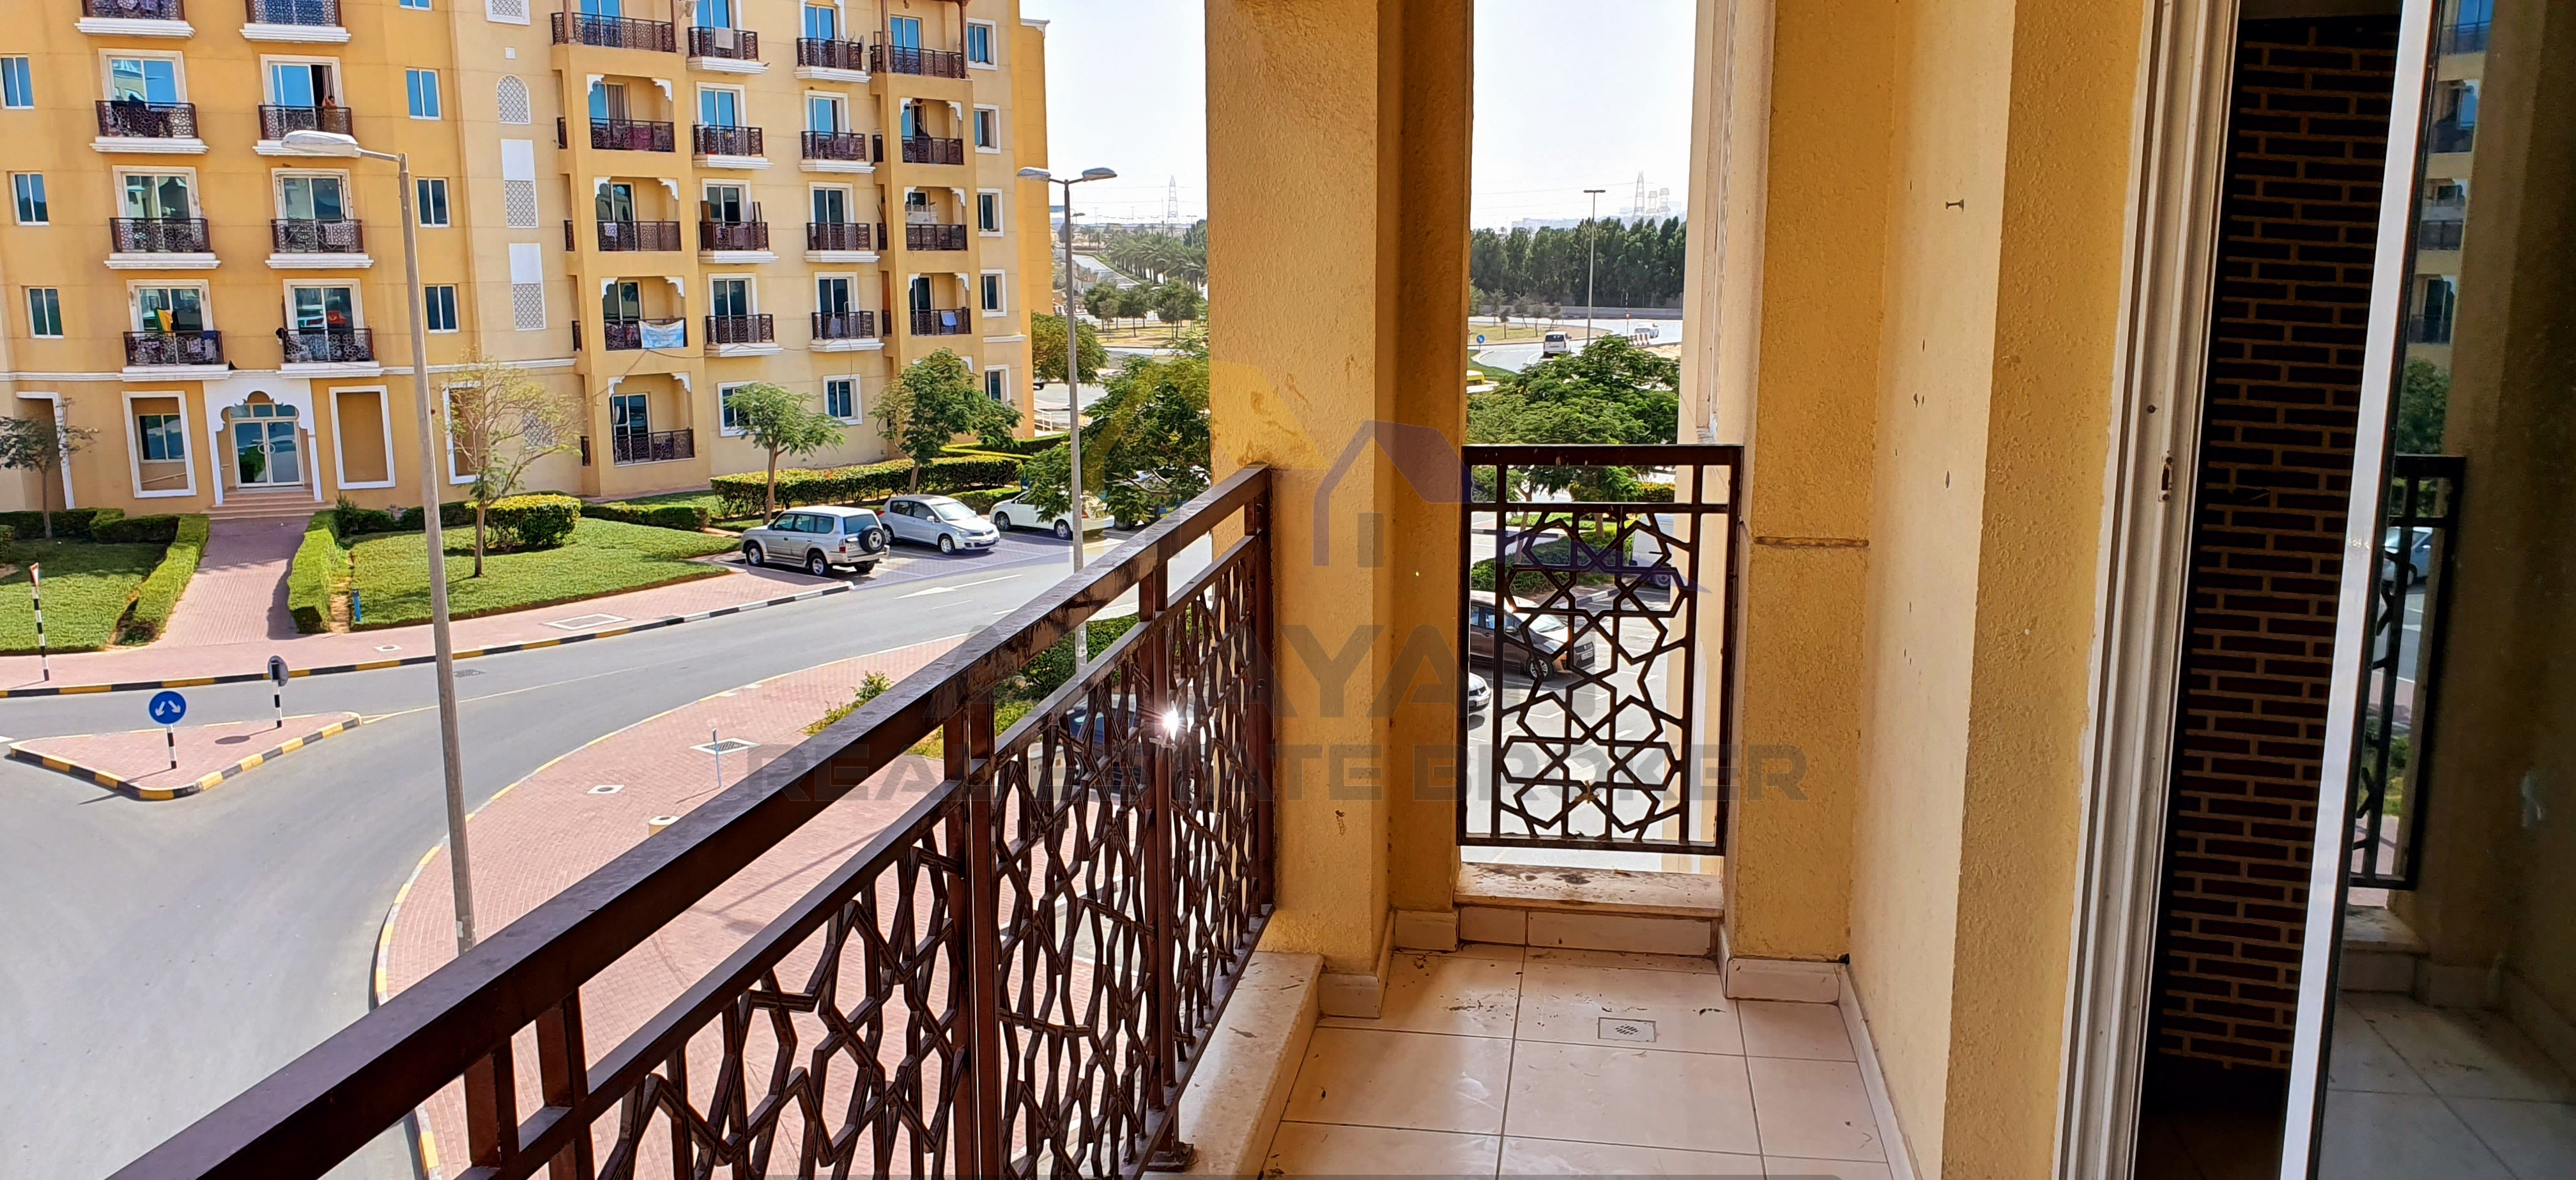 EMIRATES CLUSTER: 1 BHK WITH BALCONY FOR SALE 335,000/-